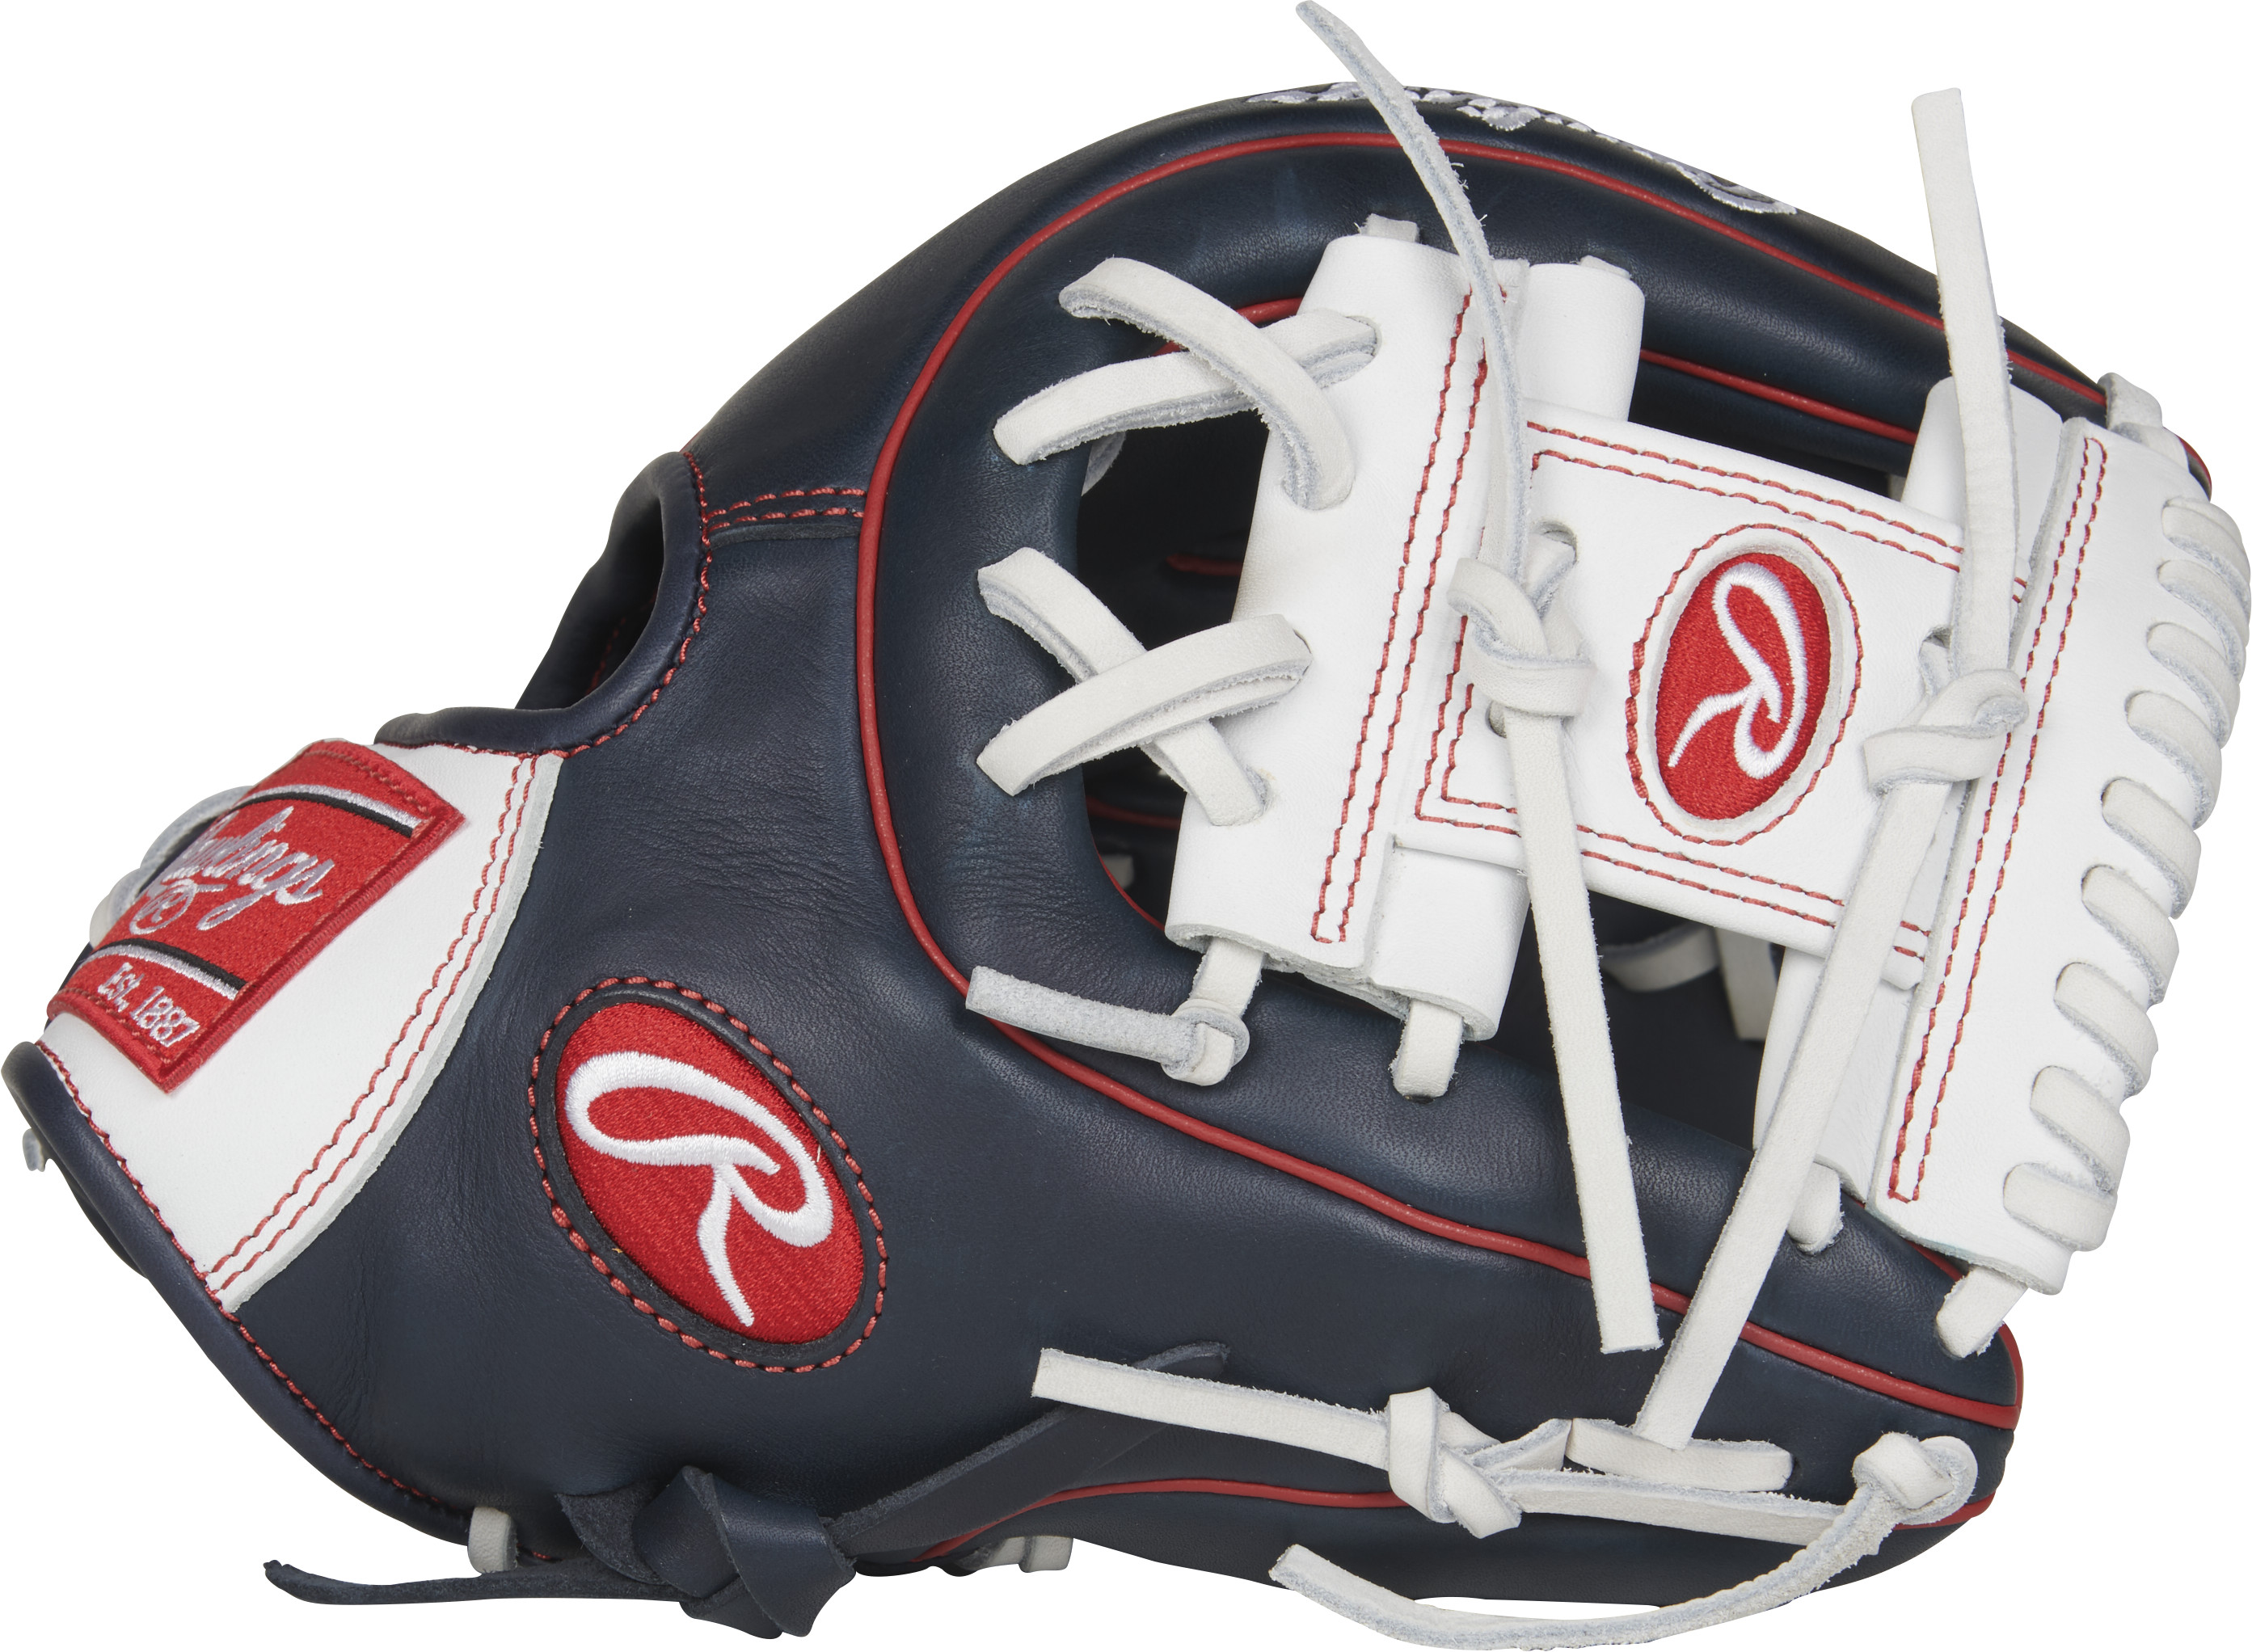 http://www.bestbatdeals.com/images/gloves/rawlings/GXLE312-2NW-3.jpg